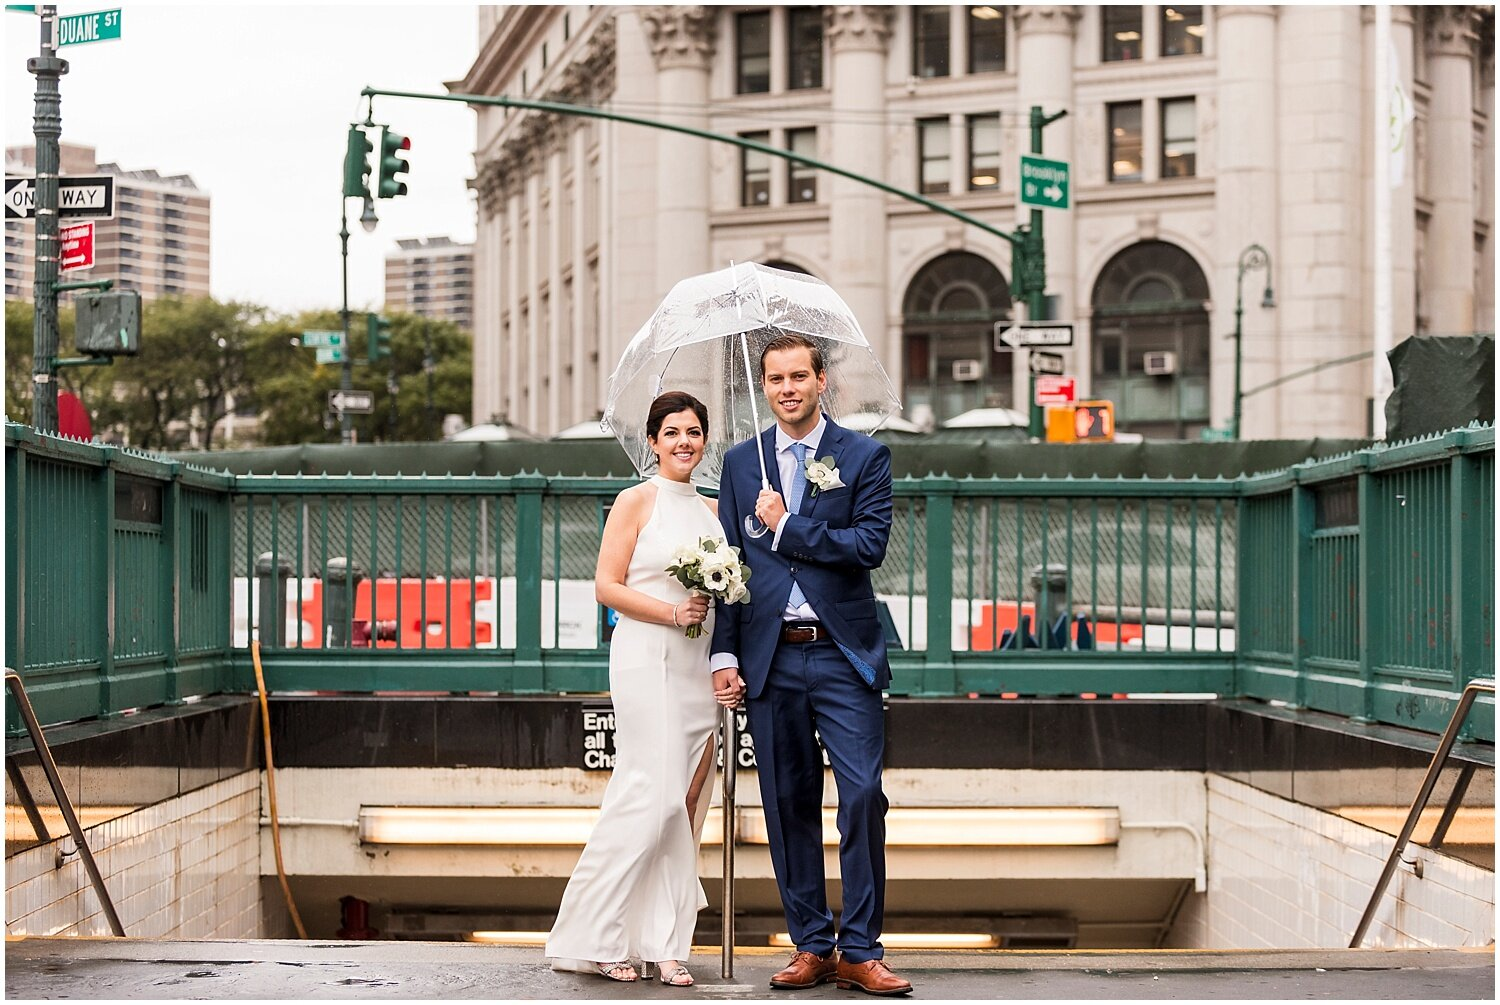 NYC-City-Hall-Courthouse-Elopement-Photographer-Apollo-Fields-026.jpg